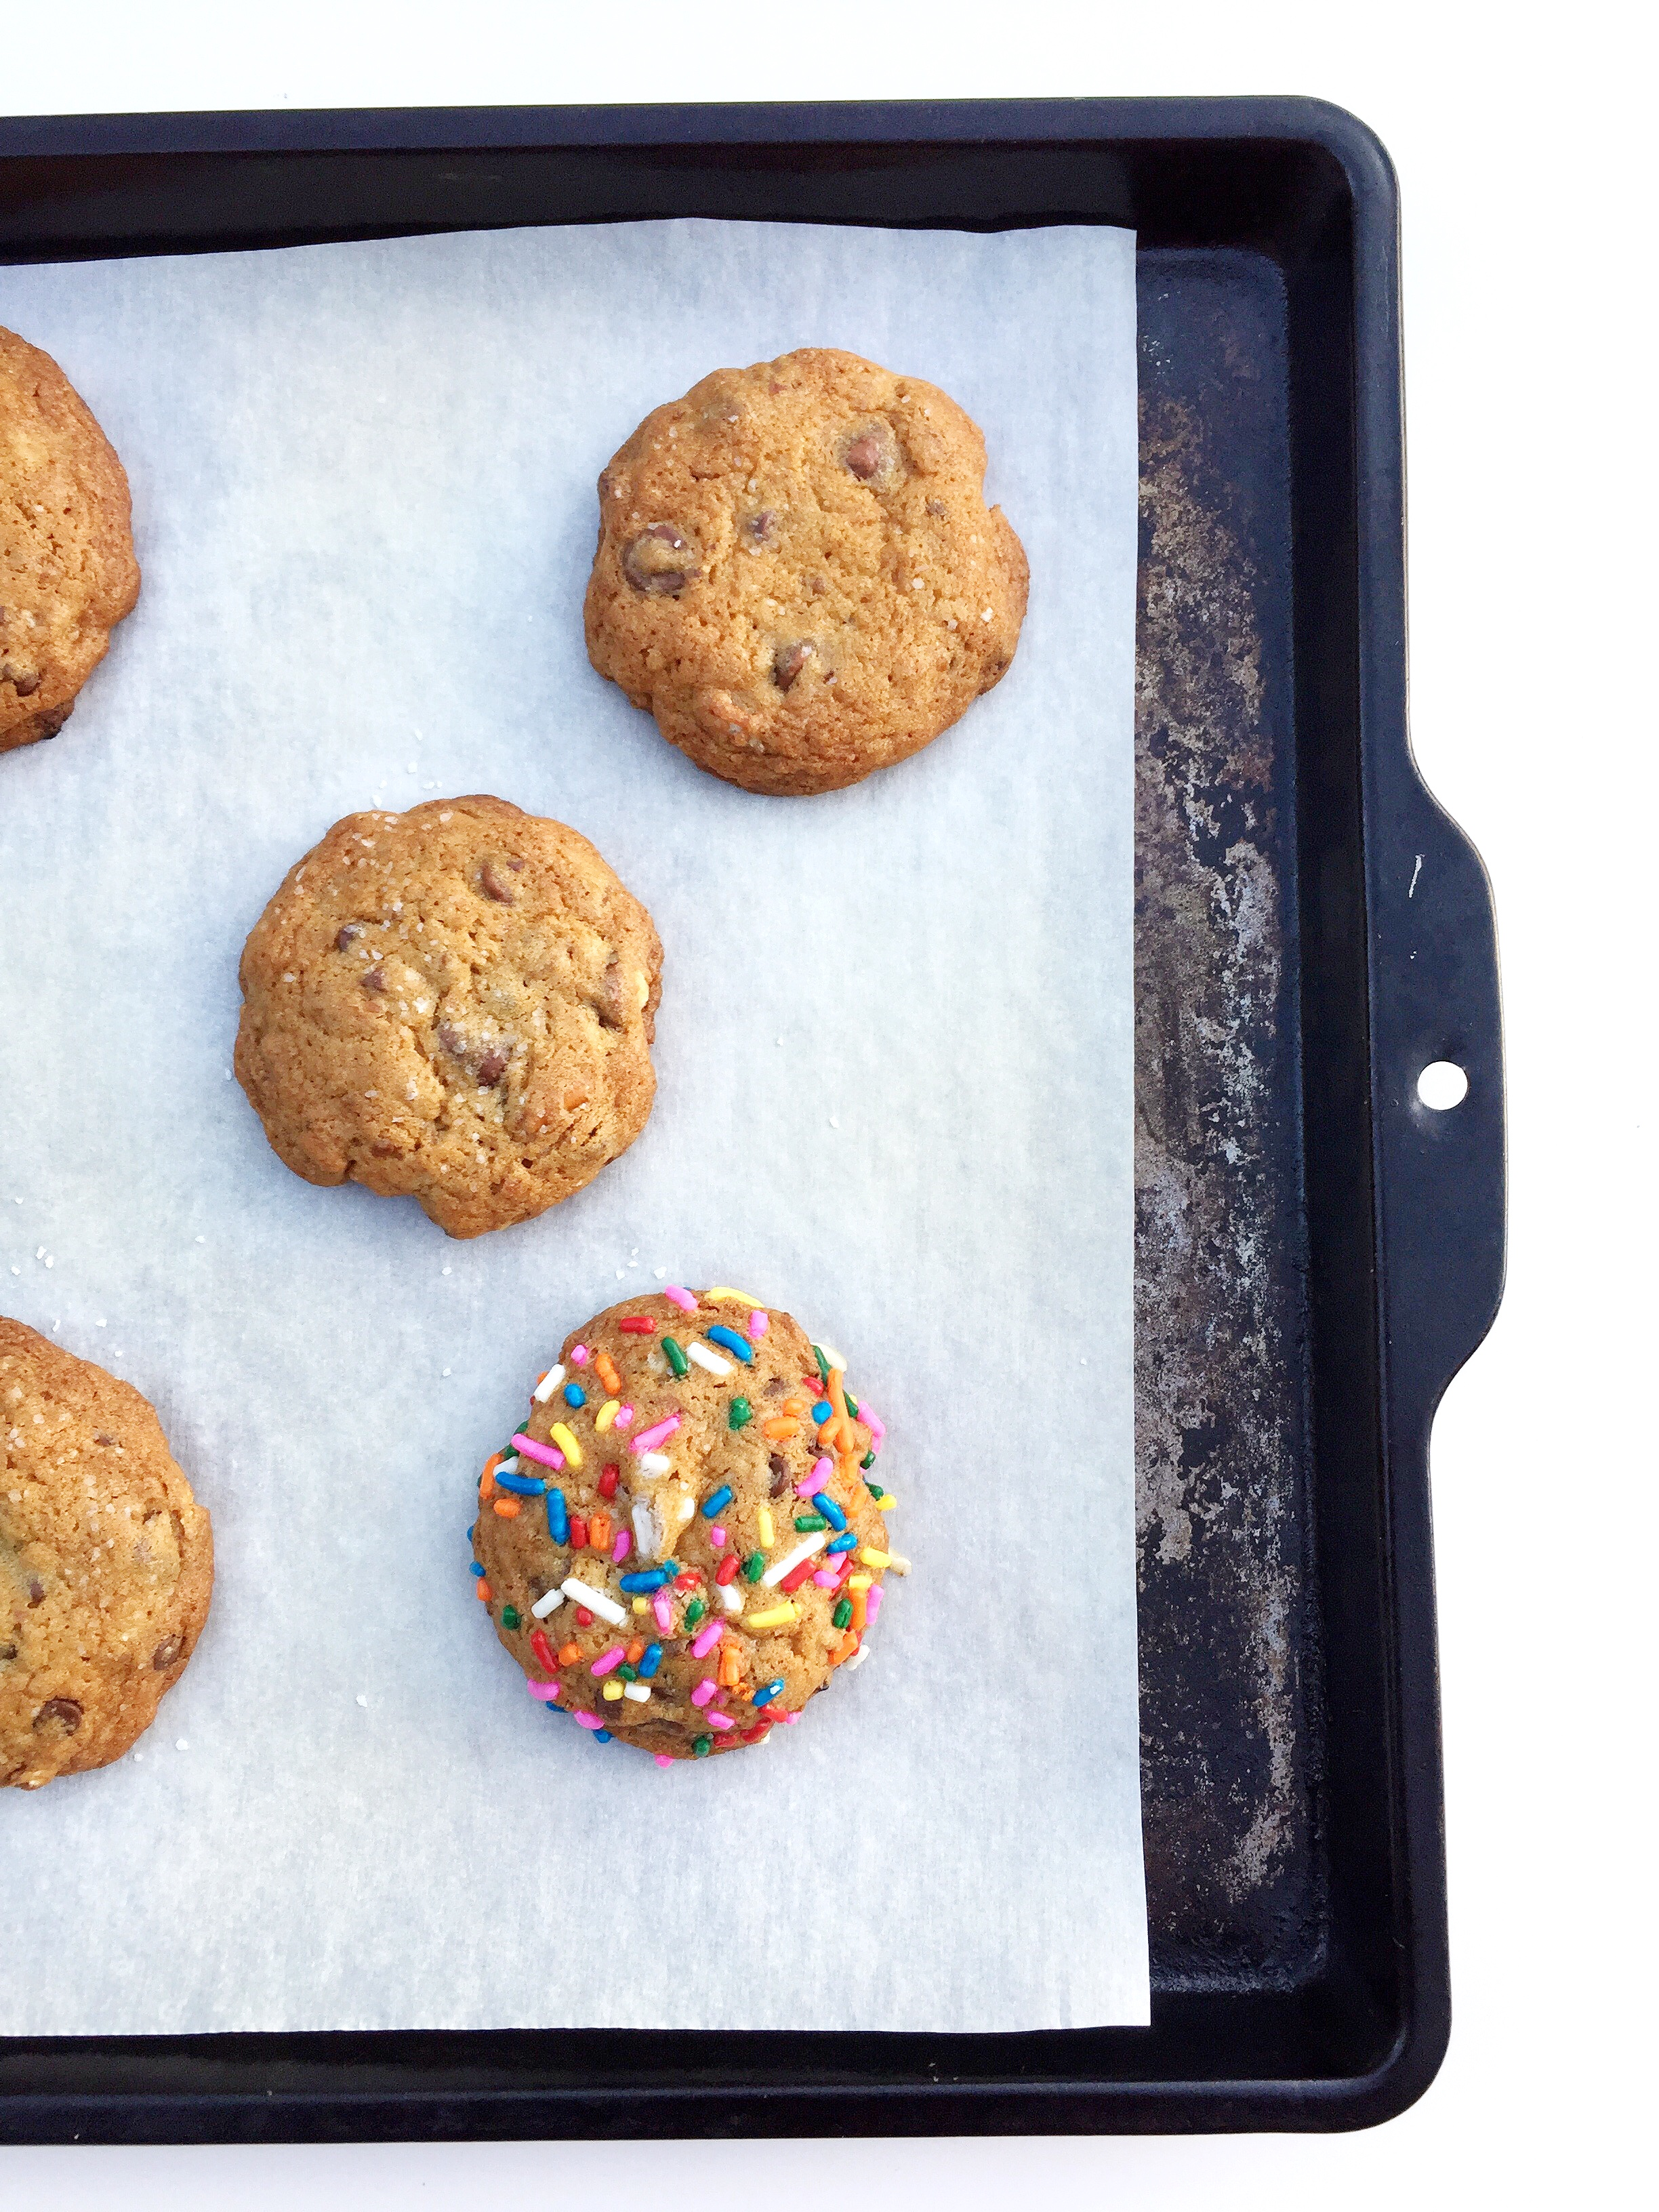 The scoop guarantees uniform cookies and it's not messy!